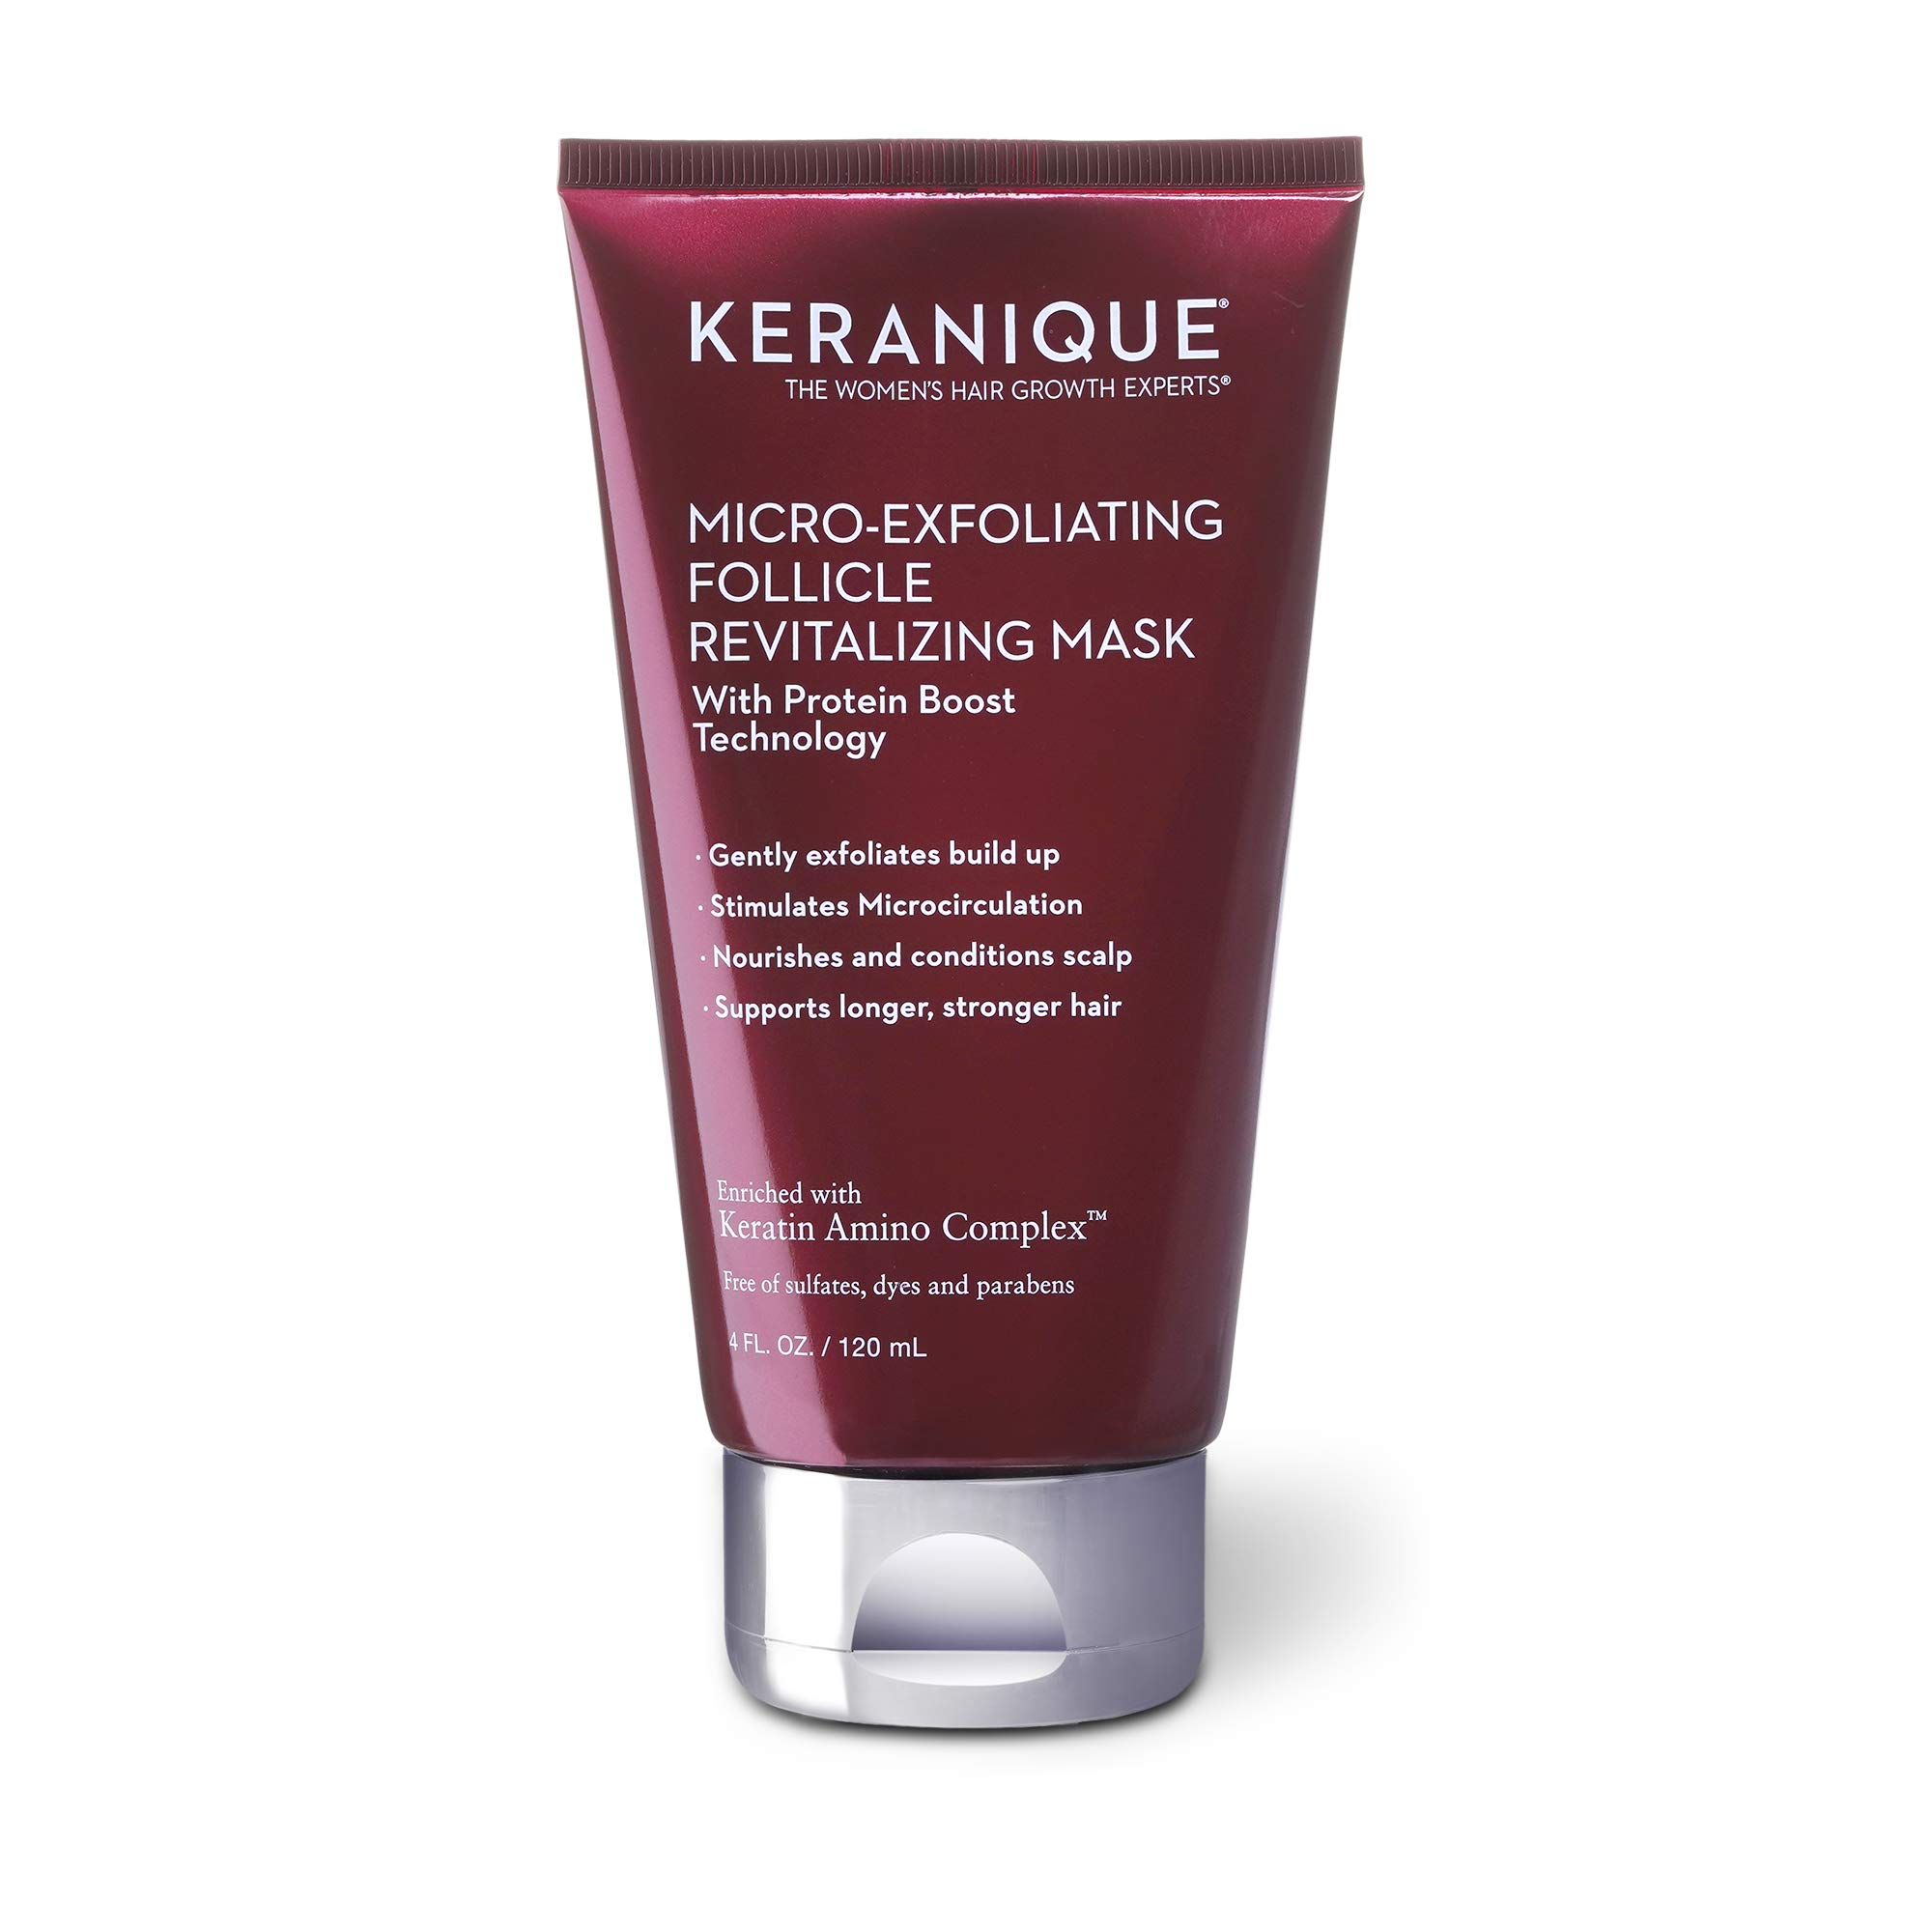 Keranique Micro-Exfoliating Follicle Revitalizing Mask, Keratin Amino Complex, Sulfate, Dyes and Parabens Free, Exfoliates, Nourish and Condition the Scalp, Supports Longer, Stronger Hair, 4 Fl Oz